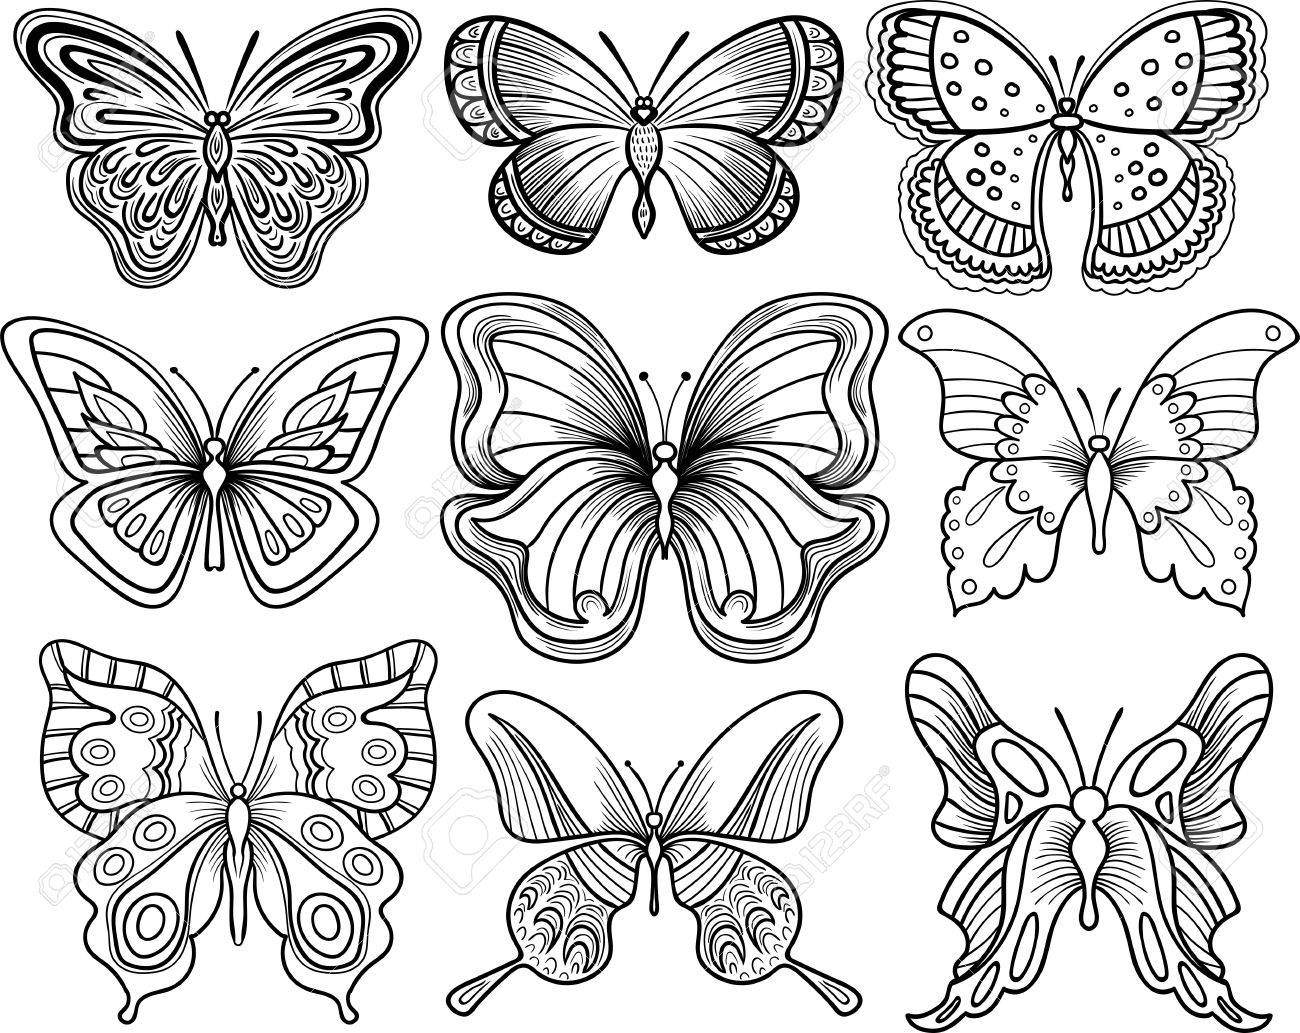 Hand drawing butterfly vector clipart black outline.